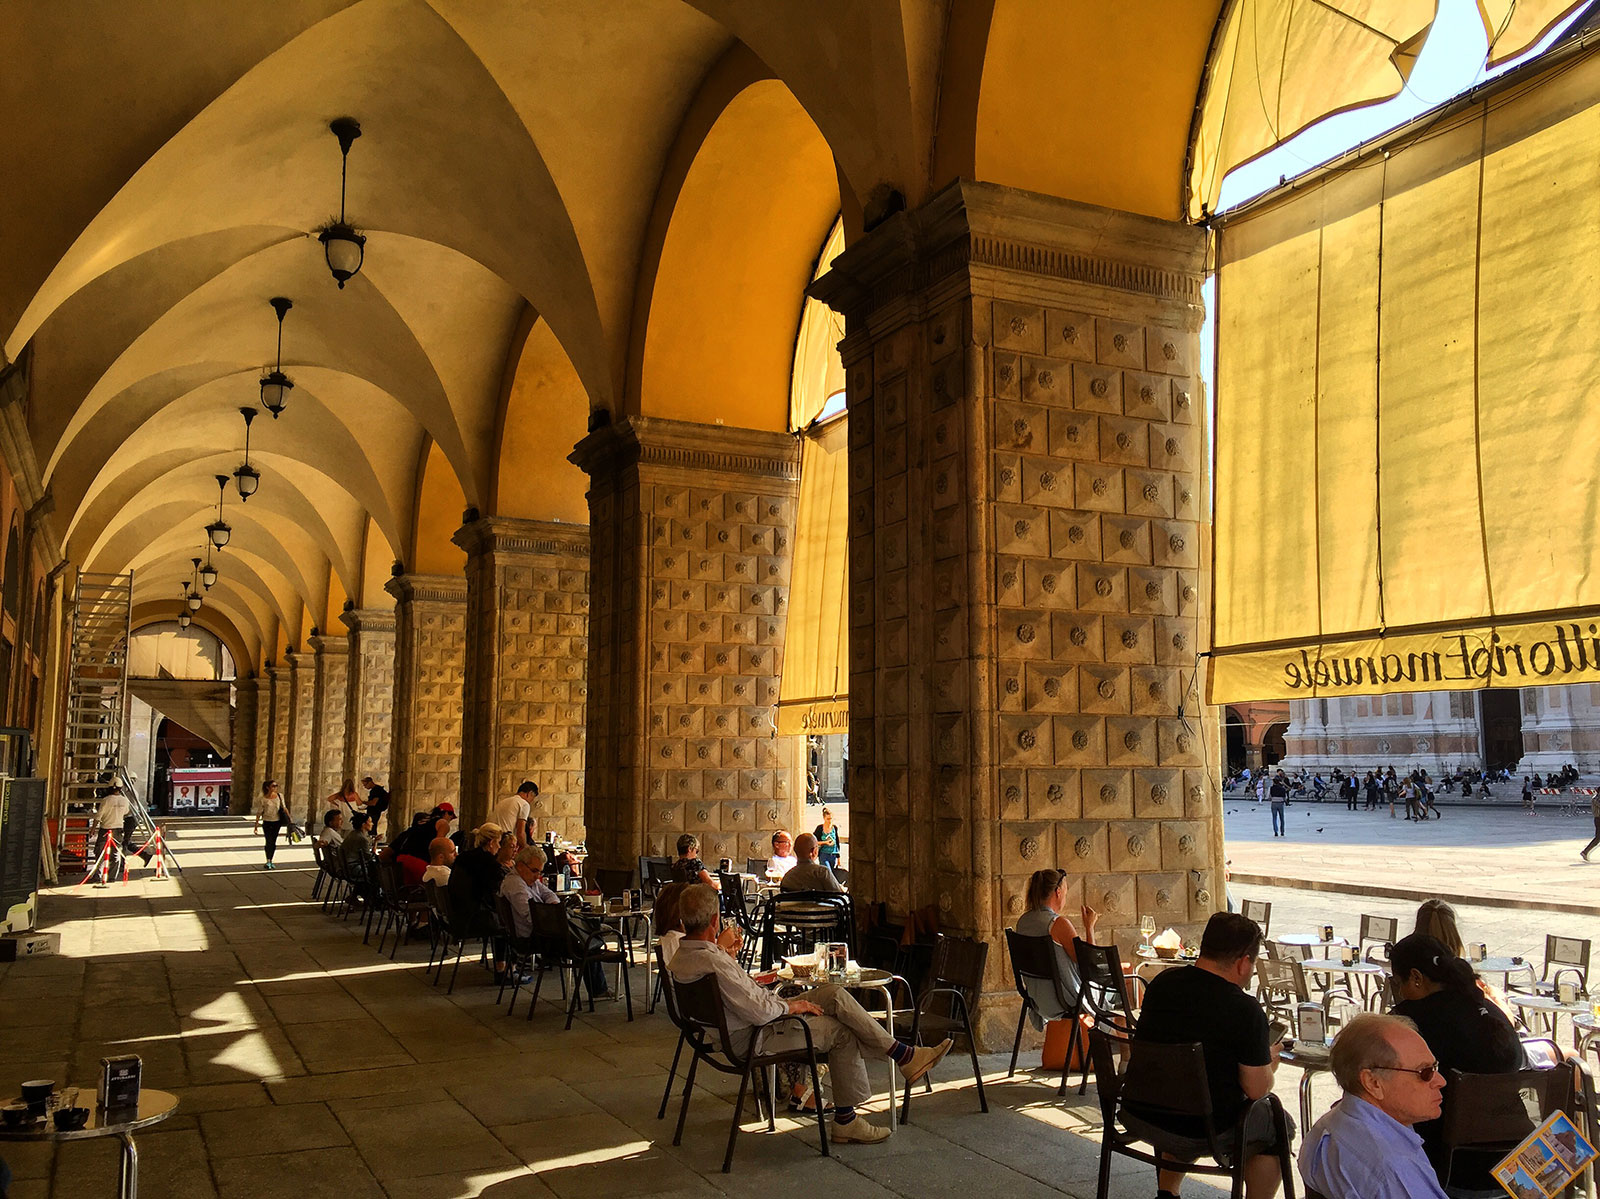 Cafe overlooking the Piazza Maggiore